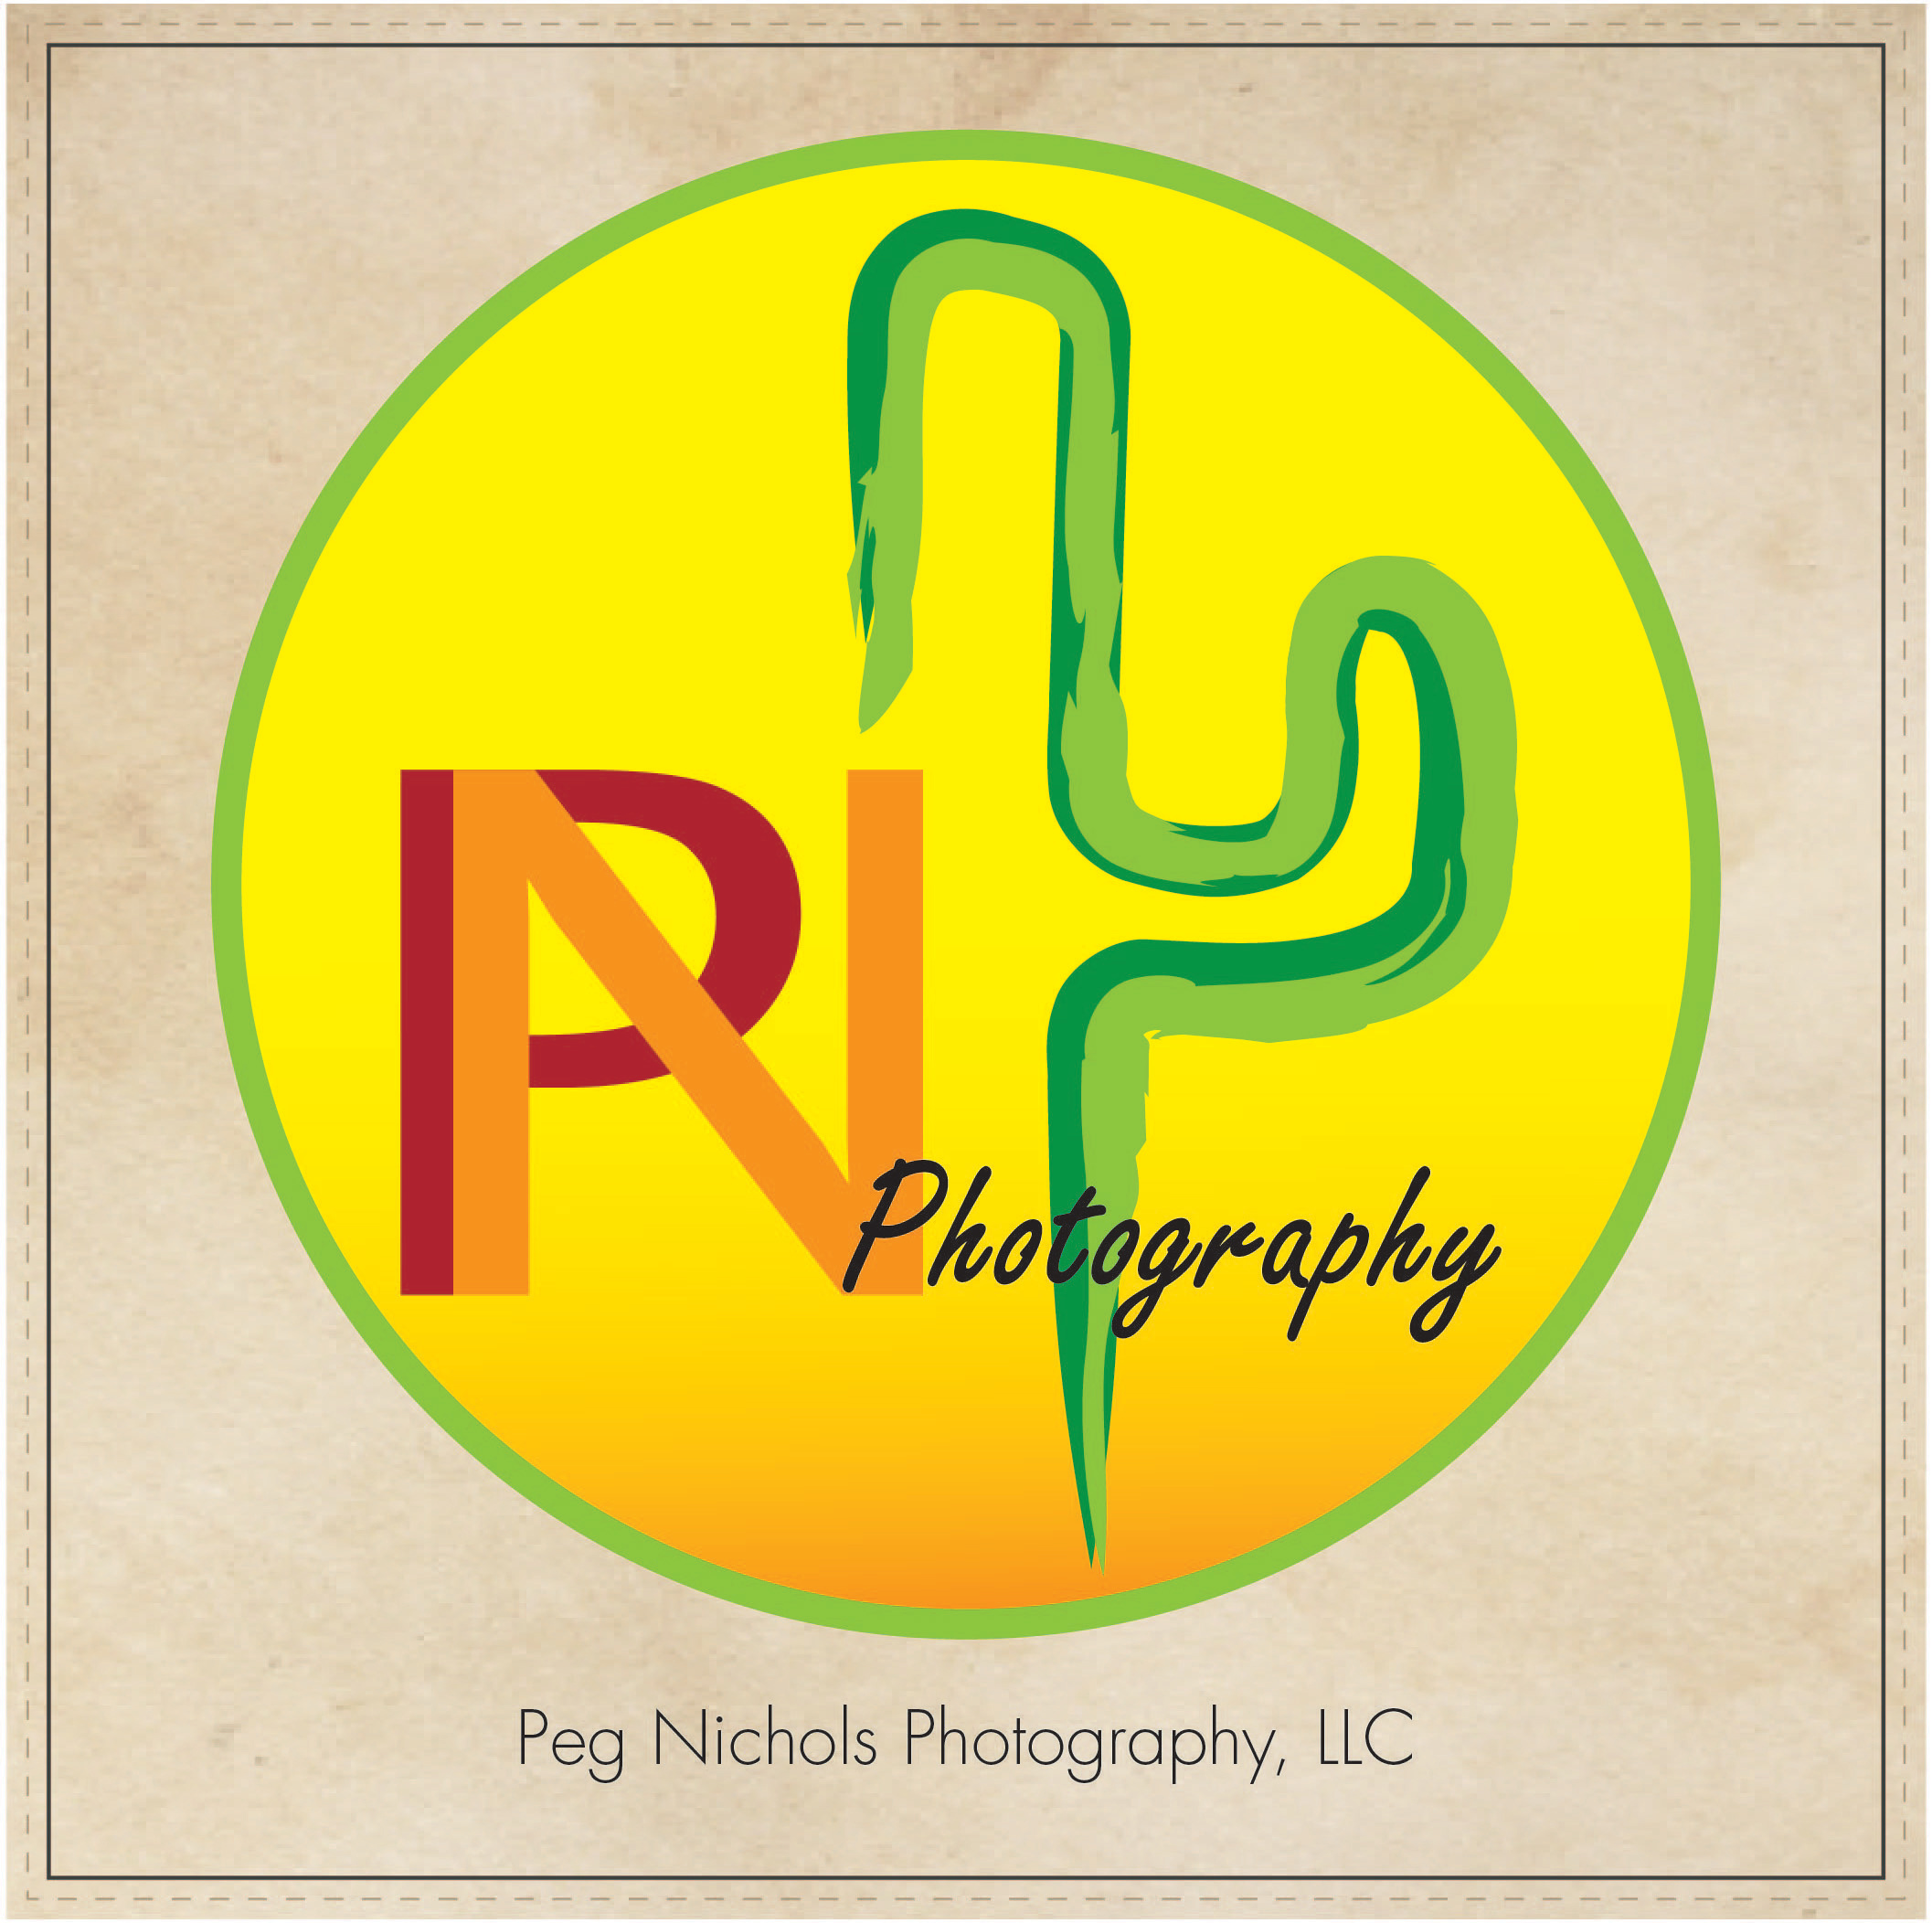 Peg Nichols Photography